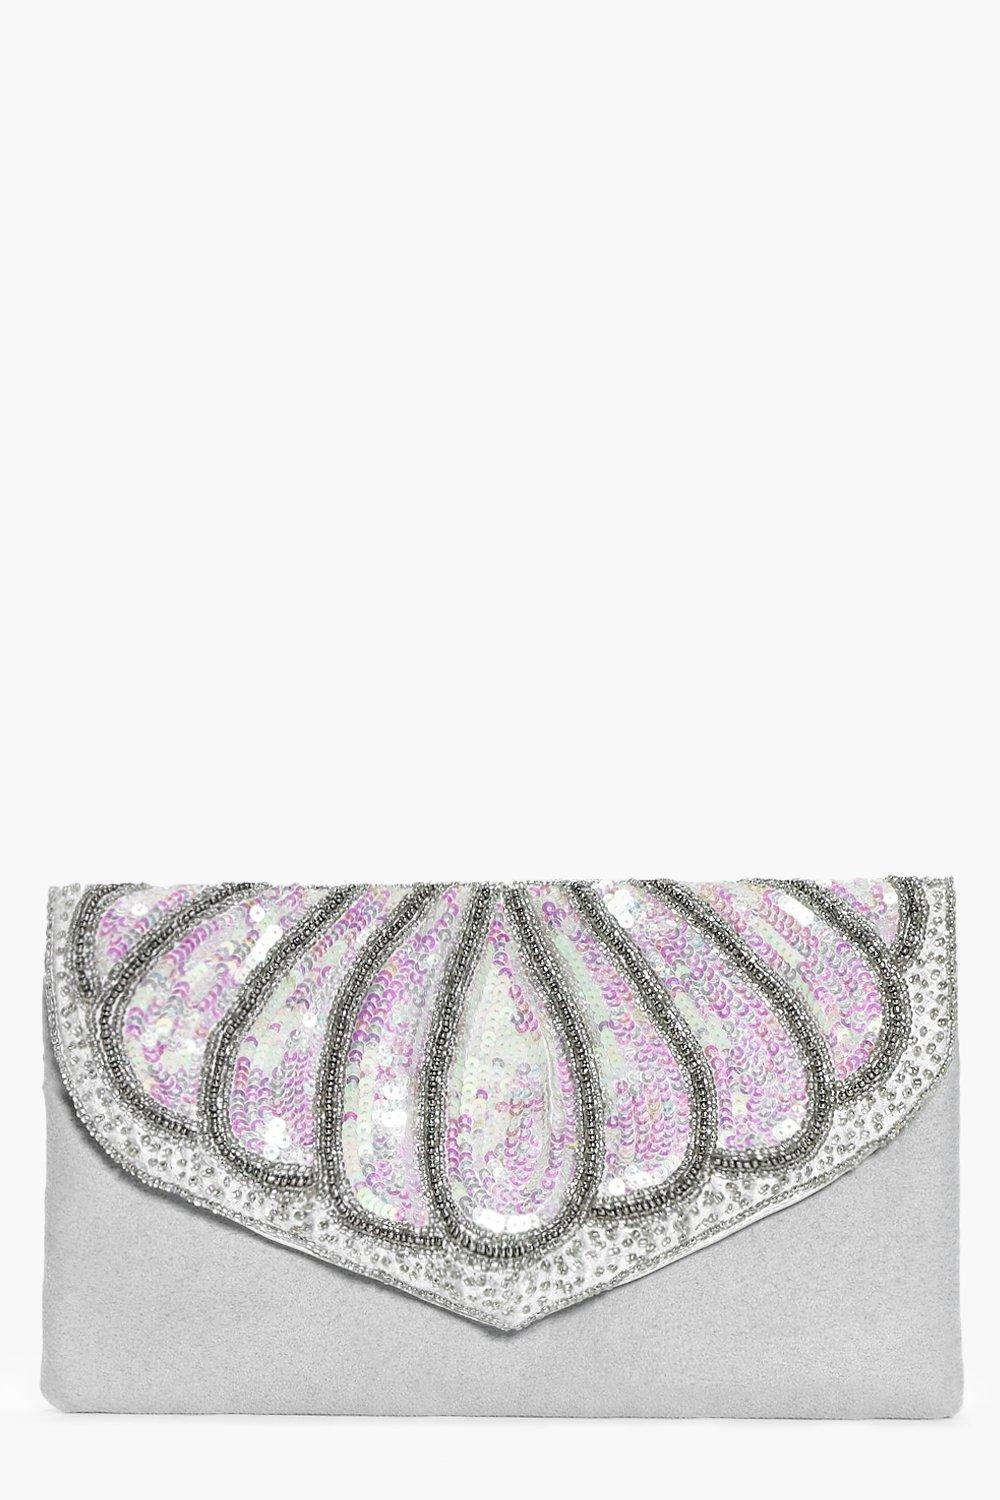 Emma Boutique Mermaid Sequin Clutch Bag